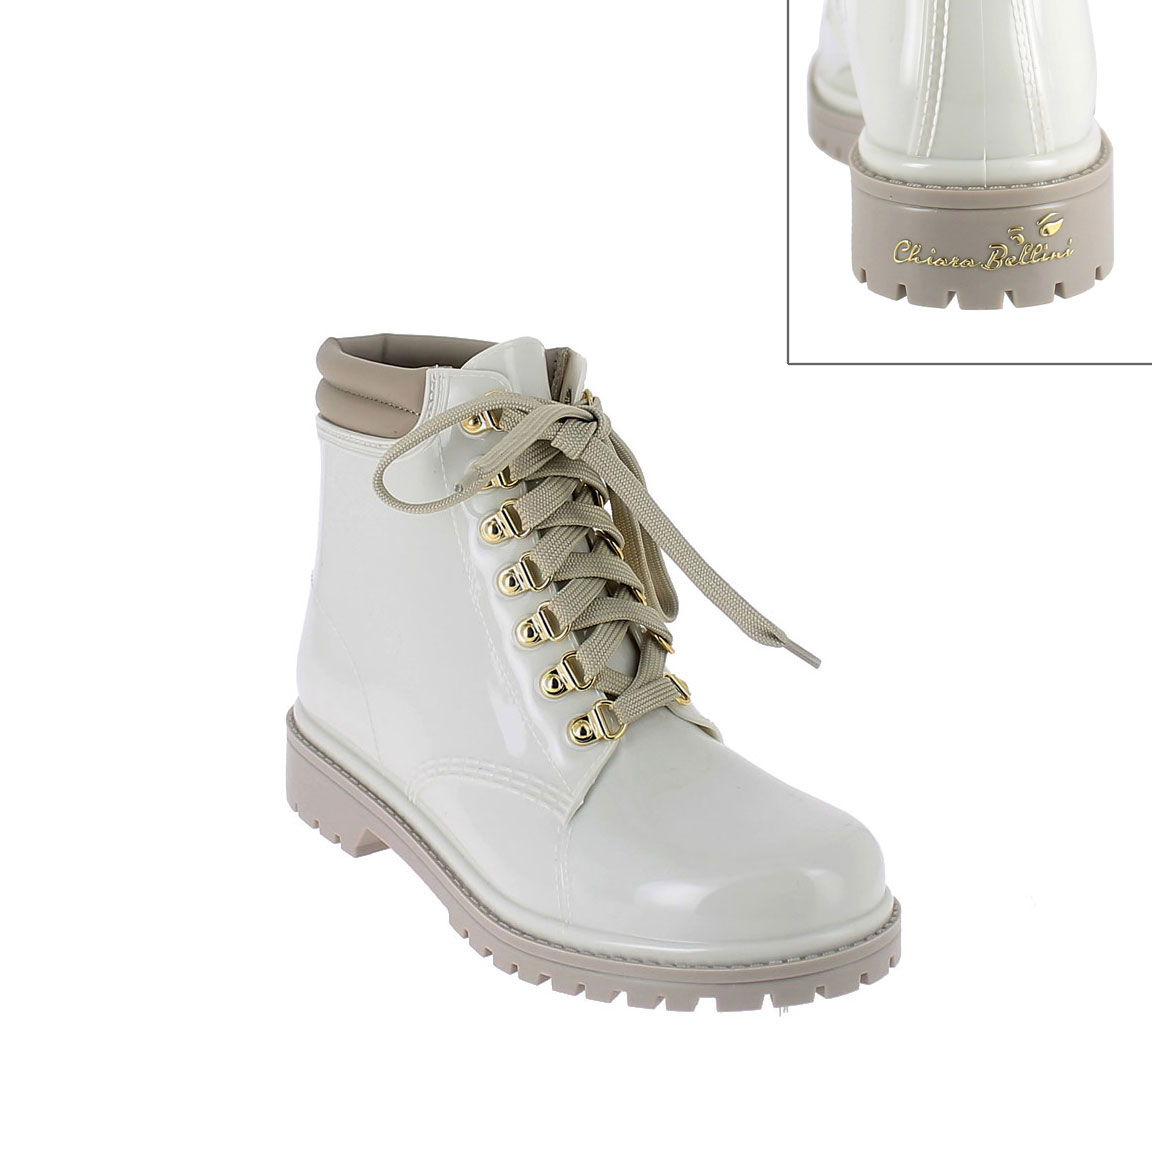 Short laced up walking boot in trench pvc with leatherette padded trim. New 3D logo